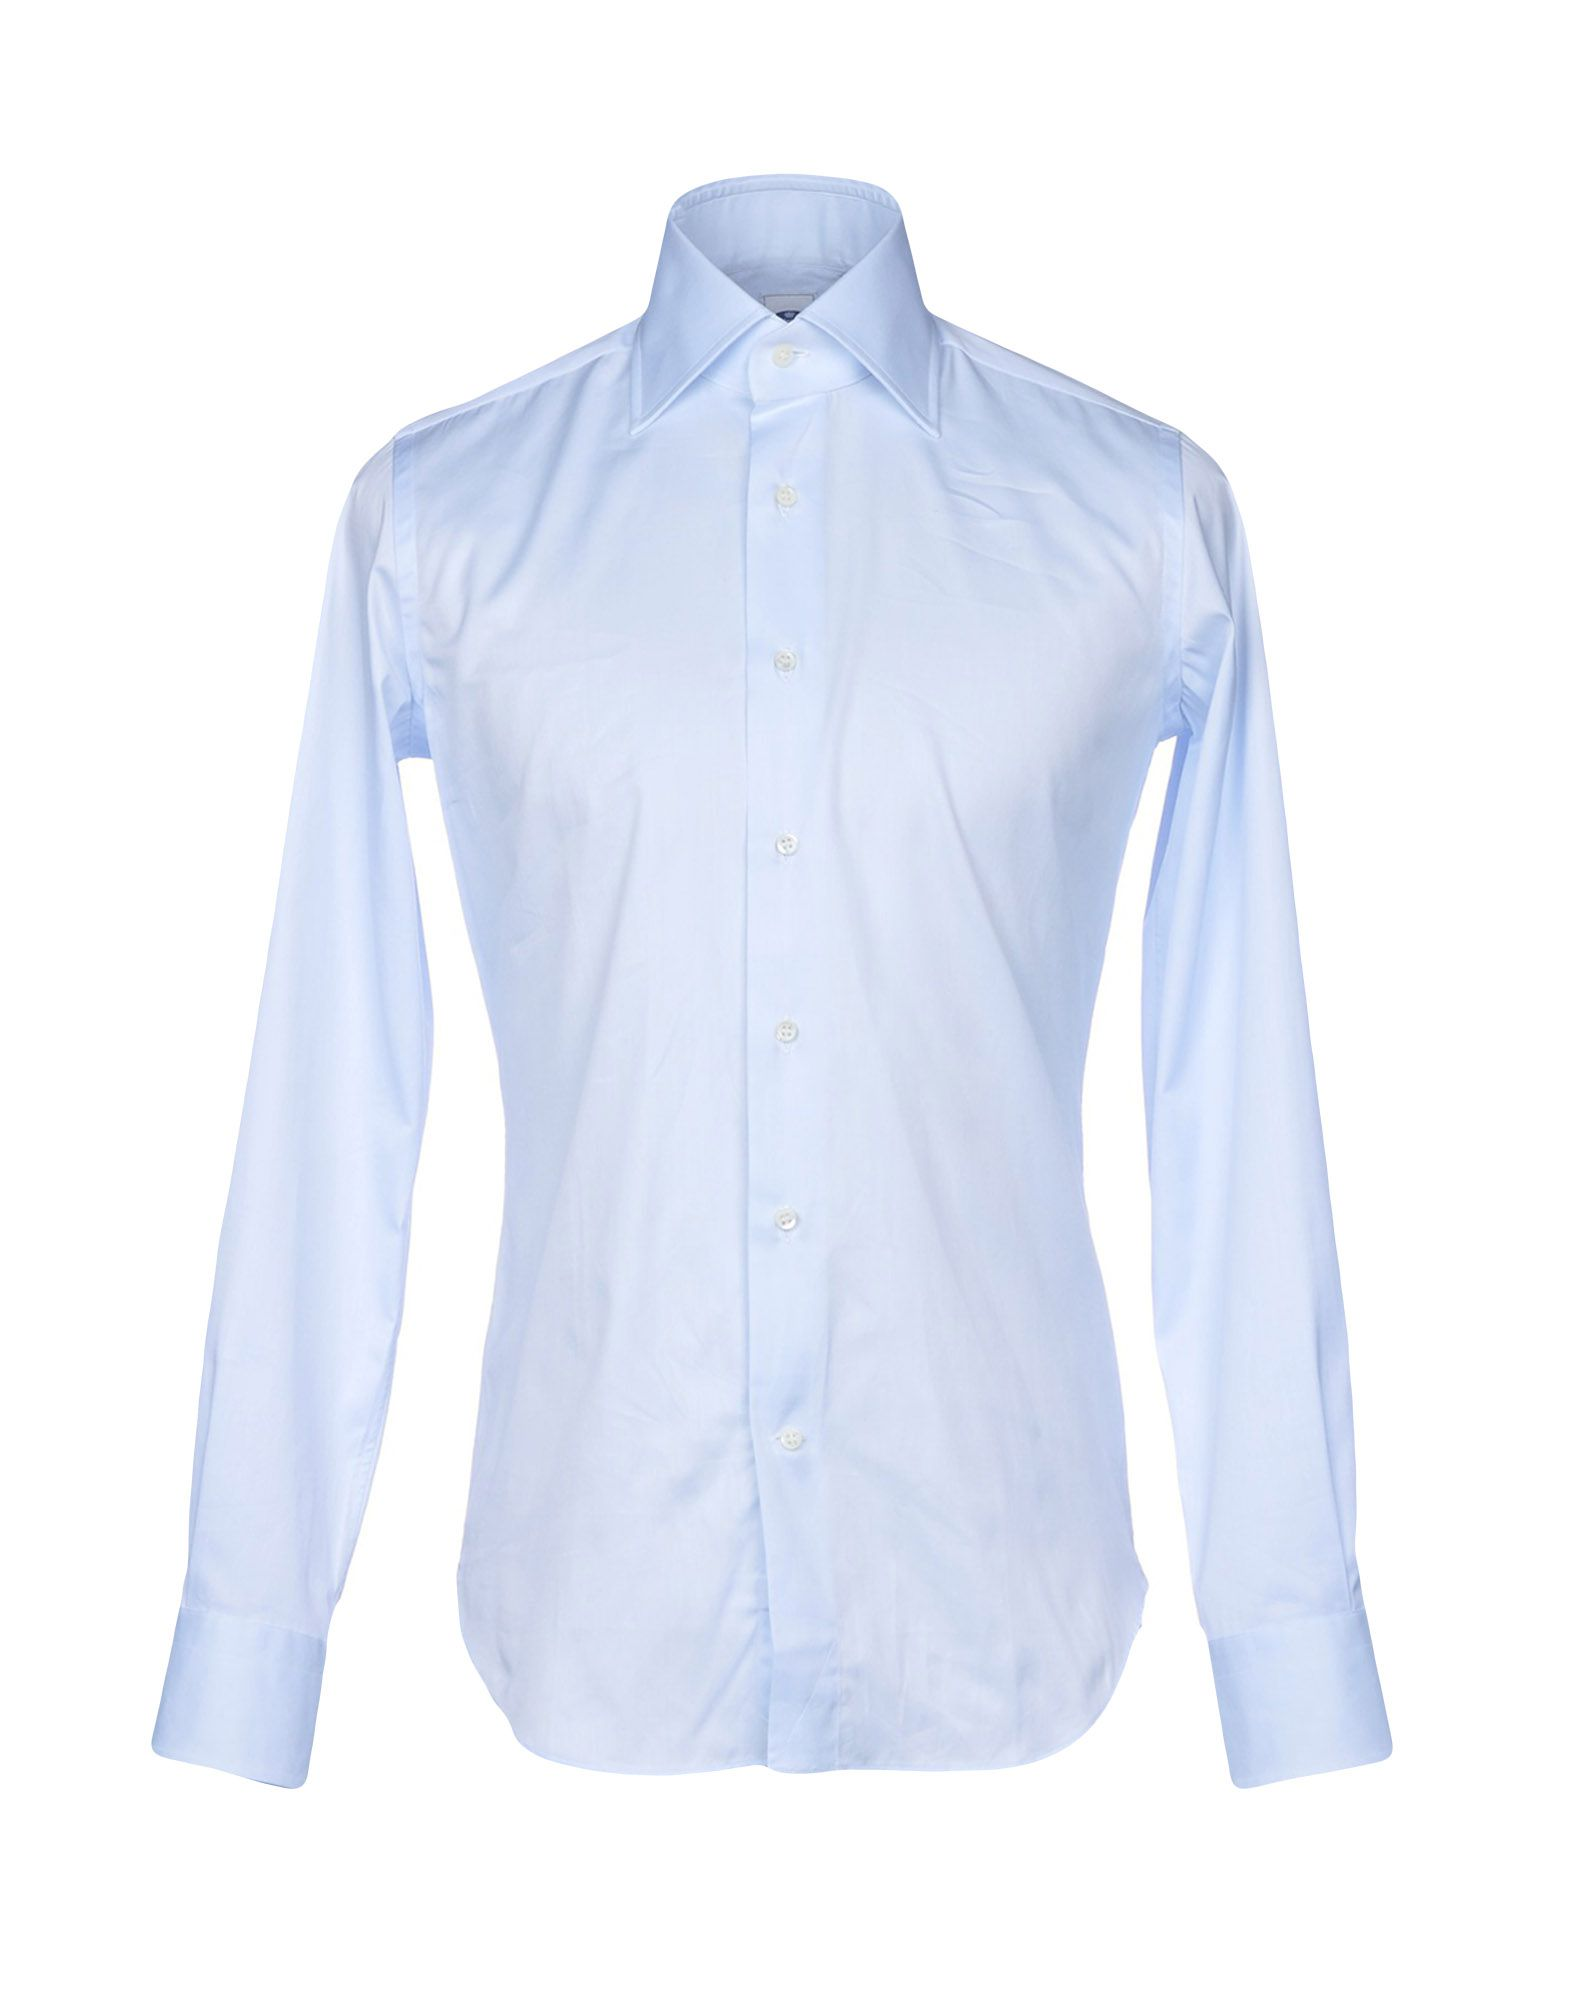 LEXINGTON Solid Color Shirt in Sky Blue